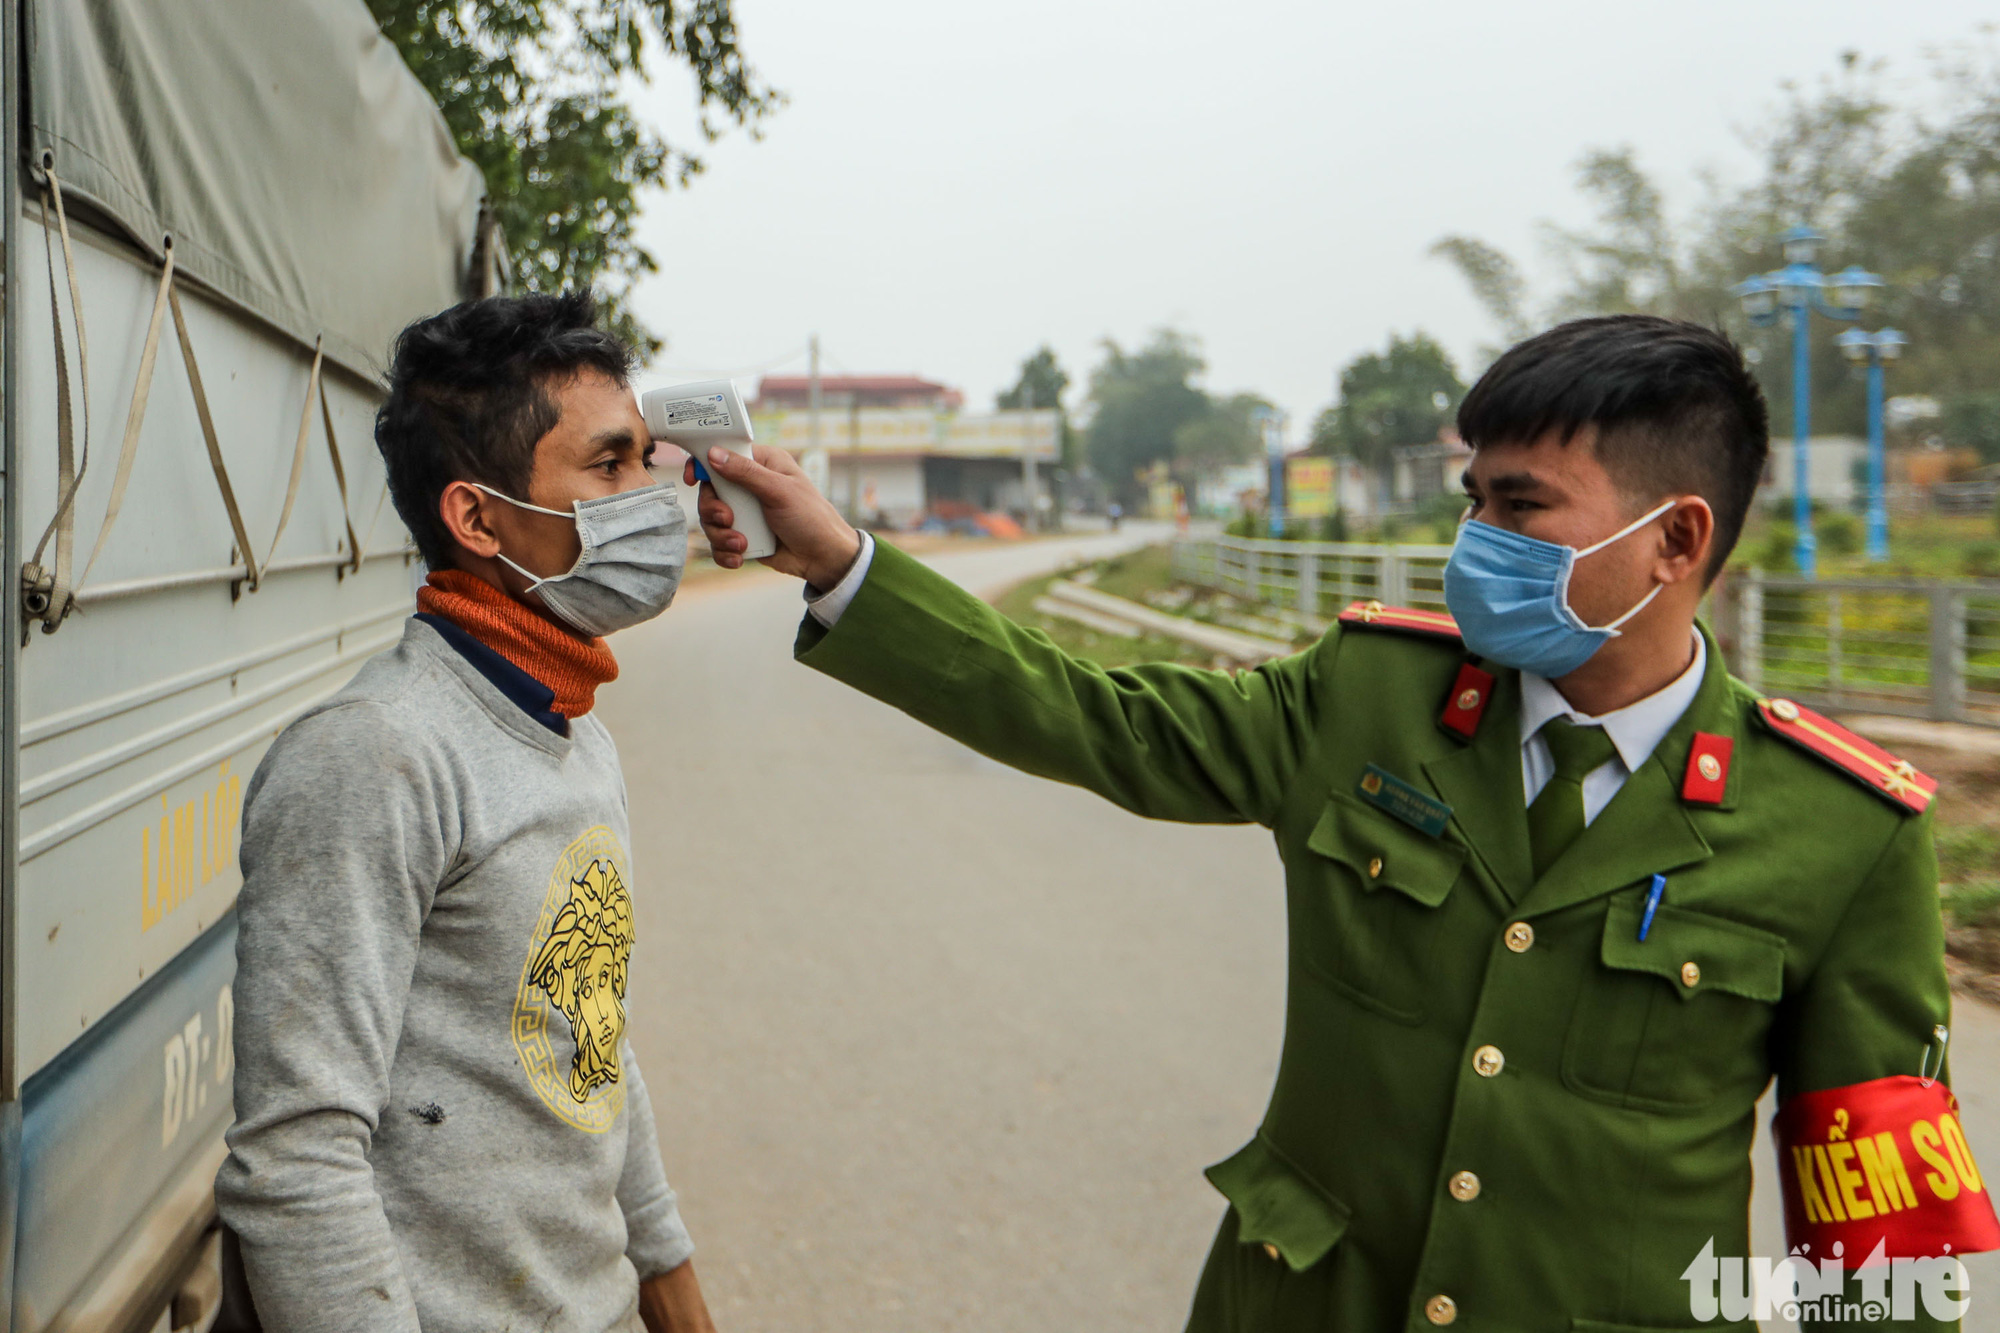 A man has his body temperature checked by a police officer at a checkpoint set up at an entrance to Son Loi Commune in Binh Xuyen District, Vinh Phuc Province, Vietnam in this photo taken on February 11, 2020. Photo: Nguyen Khanh / Tuoi Tre